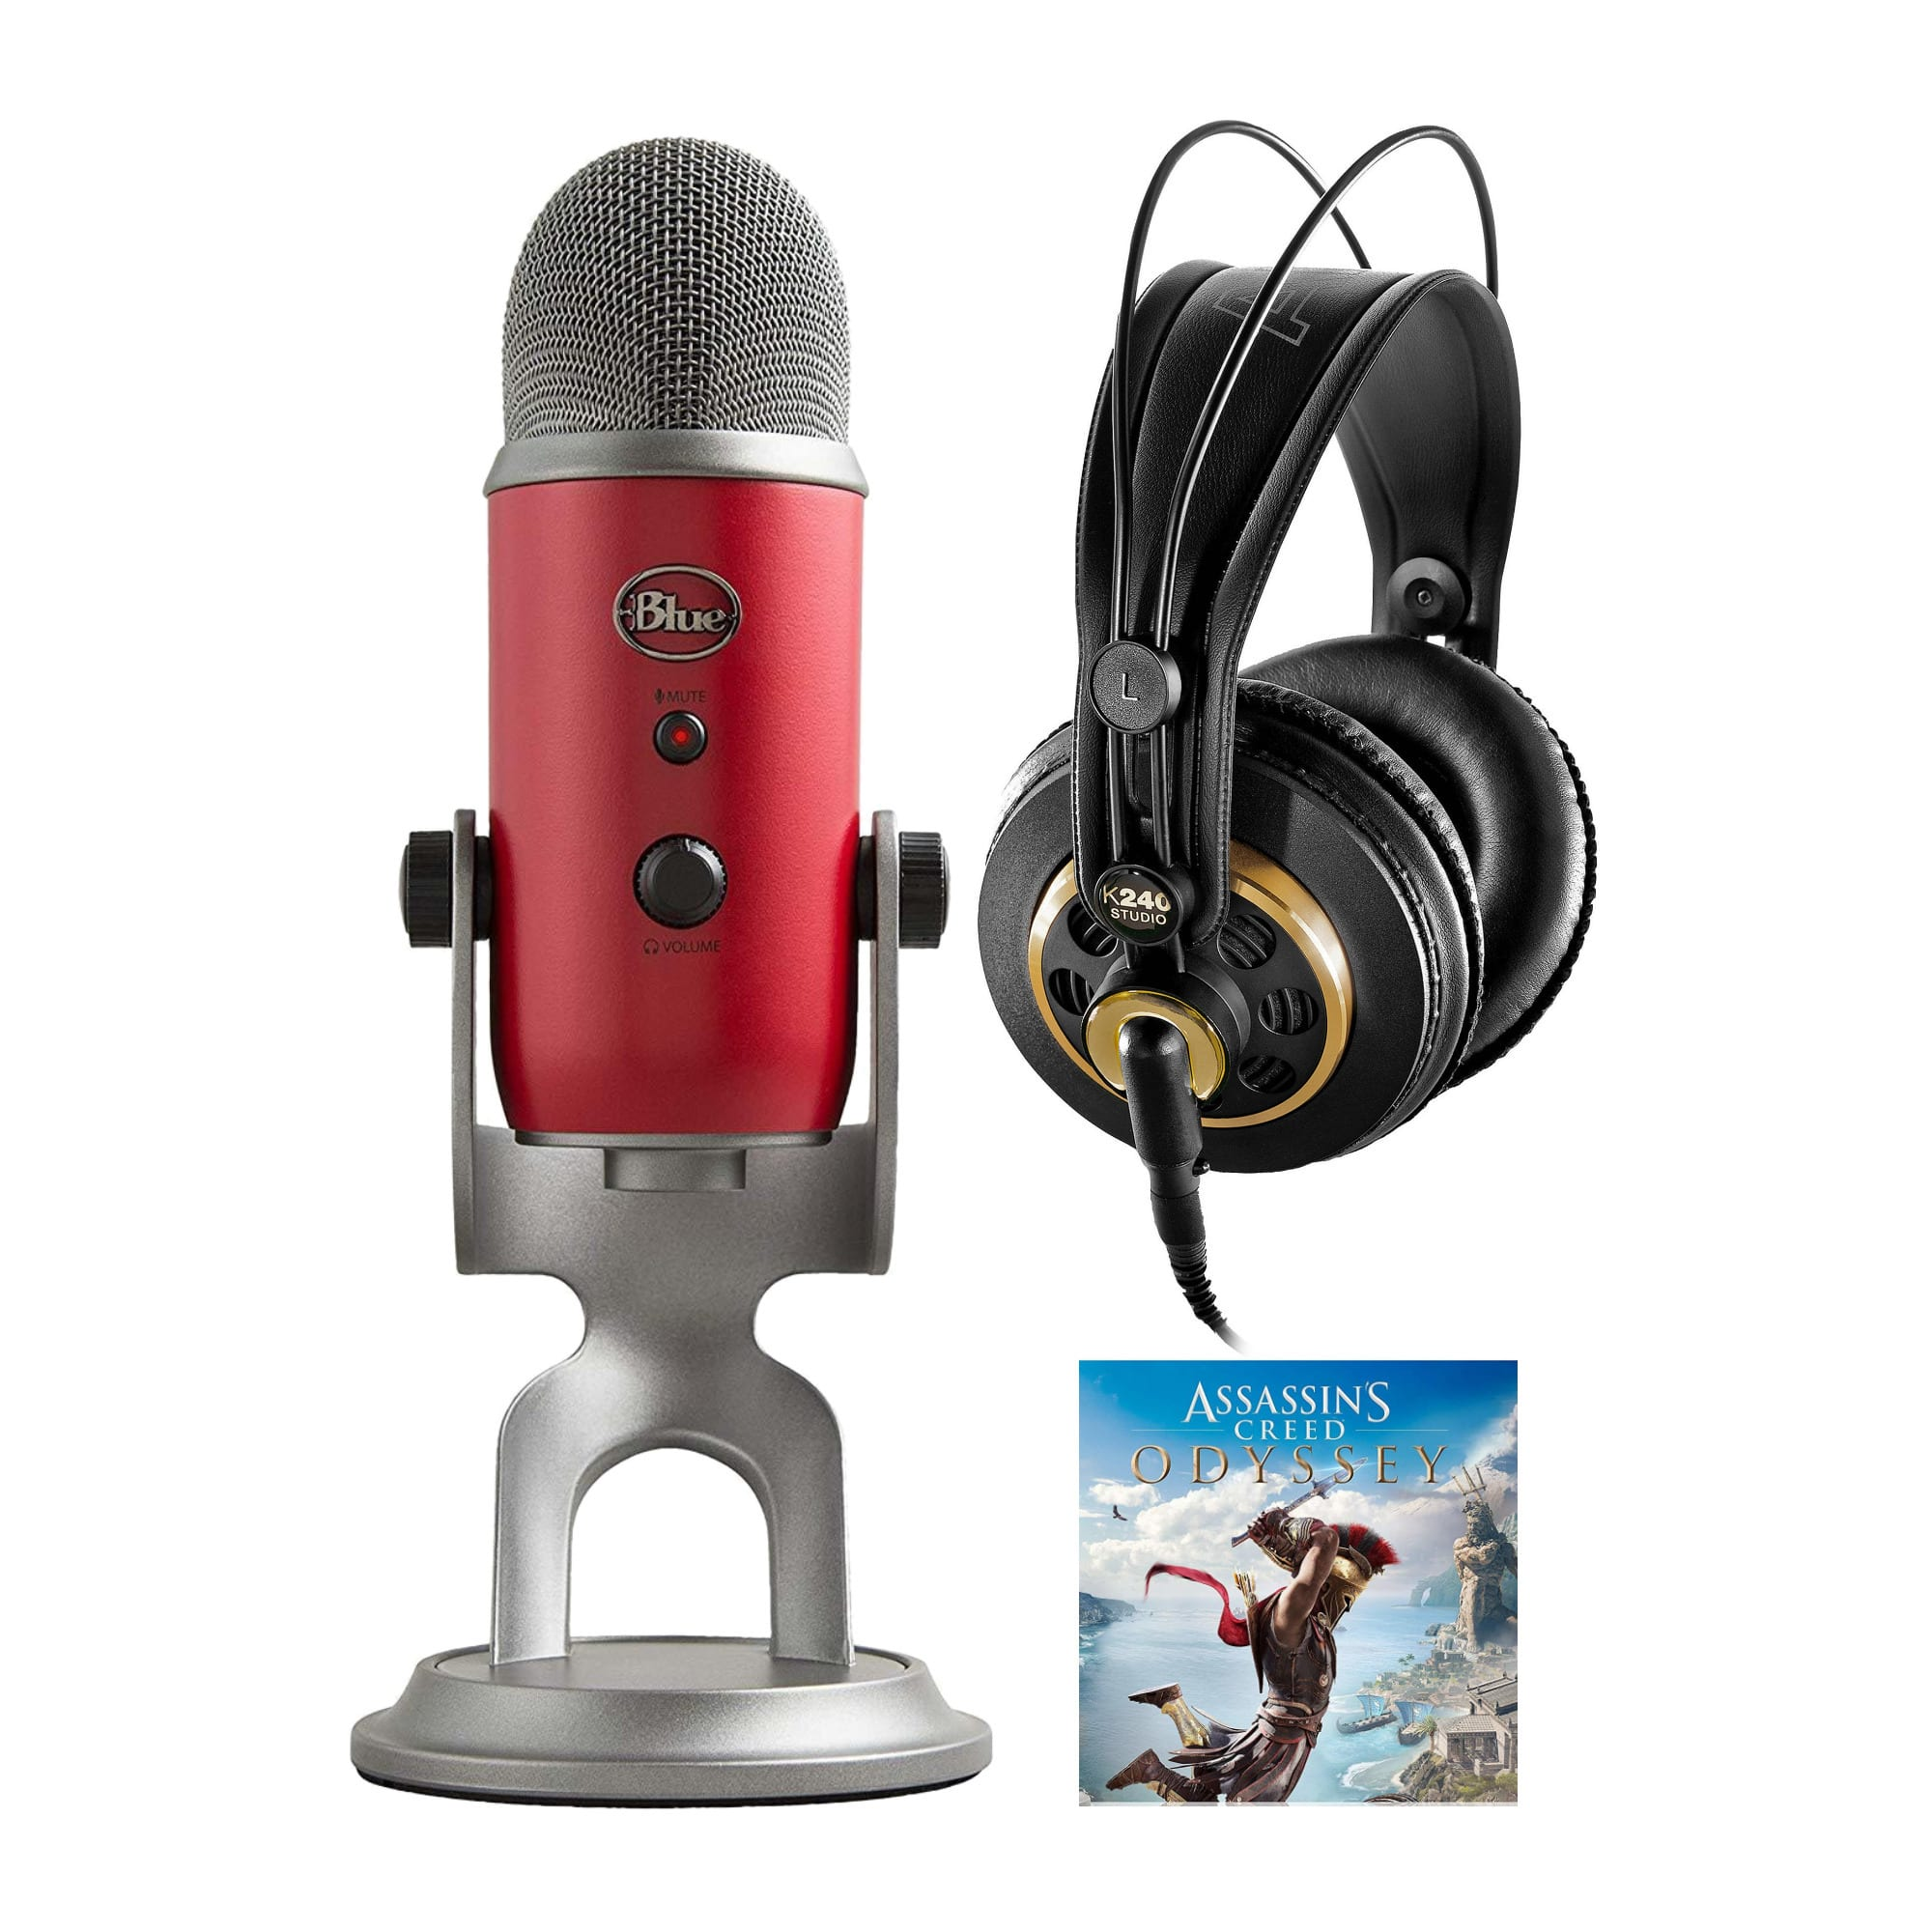 Blue Yeti USB Microphone (Red) w/ Assassin's Creed Odyssey & AKG K 240 Headphones $100 + free s/h